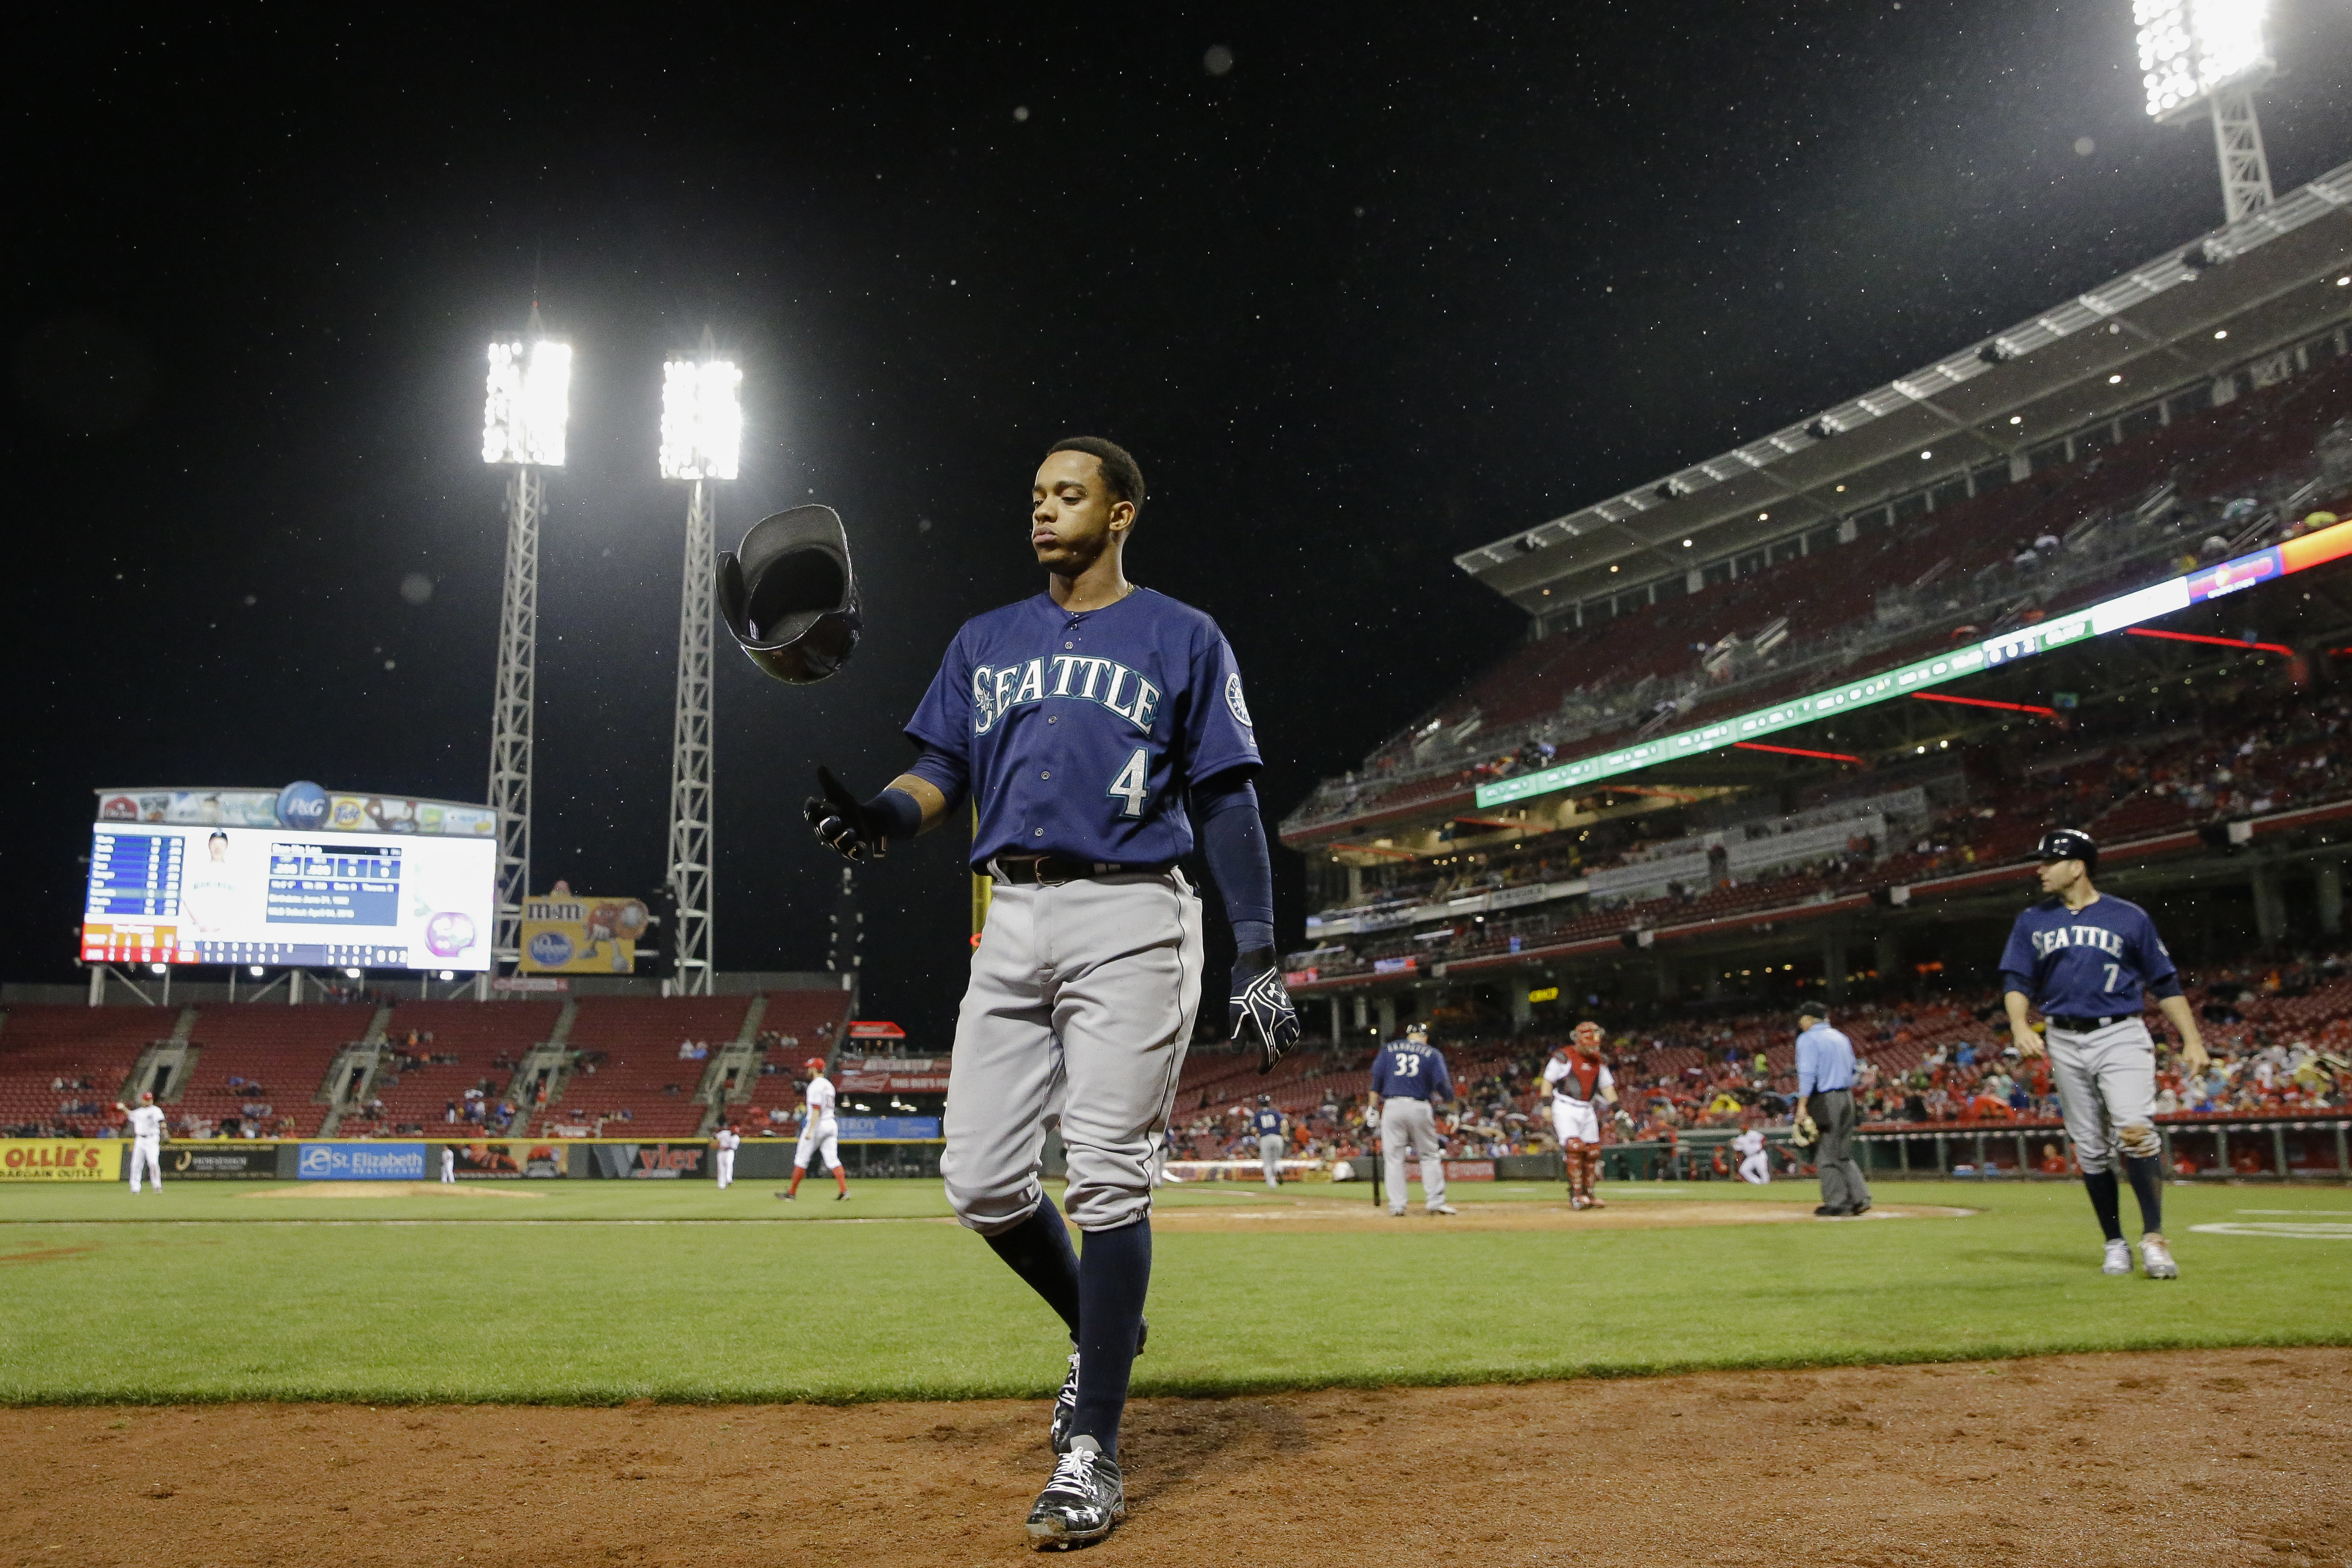 Seattle Mariners' Ketel Marte flips his helmet as he walks to the dugout after scoring on a two-run single by Dae-Ho Lee off Cincinnati Reds relief pitcher Tony Cingrani during the seventh inning of a baseball game, Friday, May 20, 2016, in Cincinnati. (A